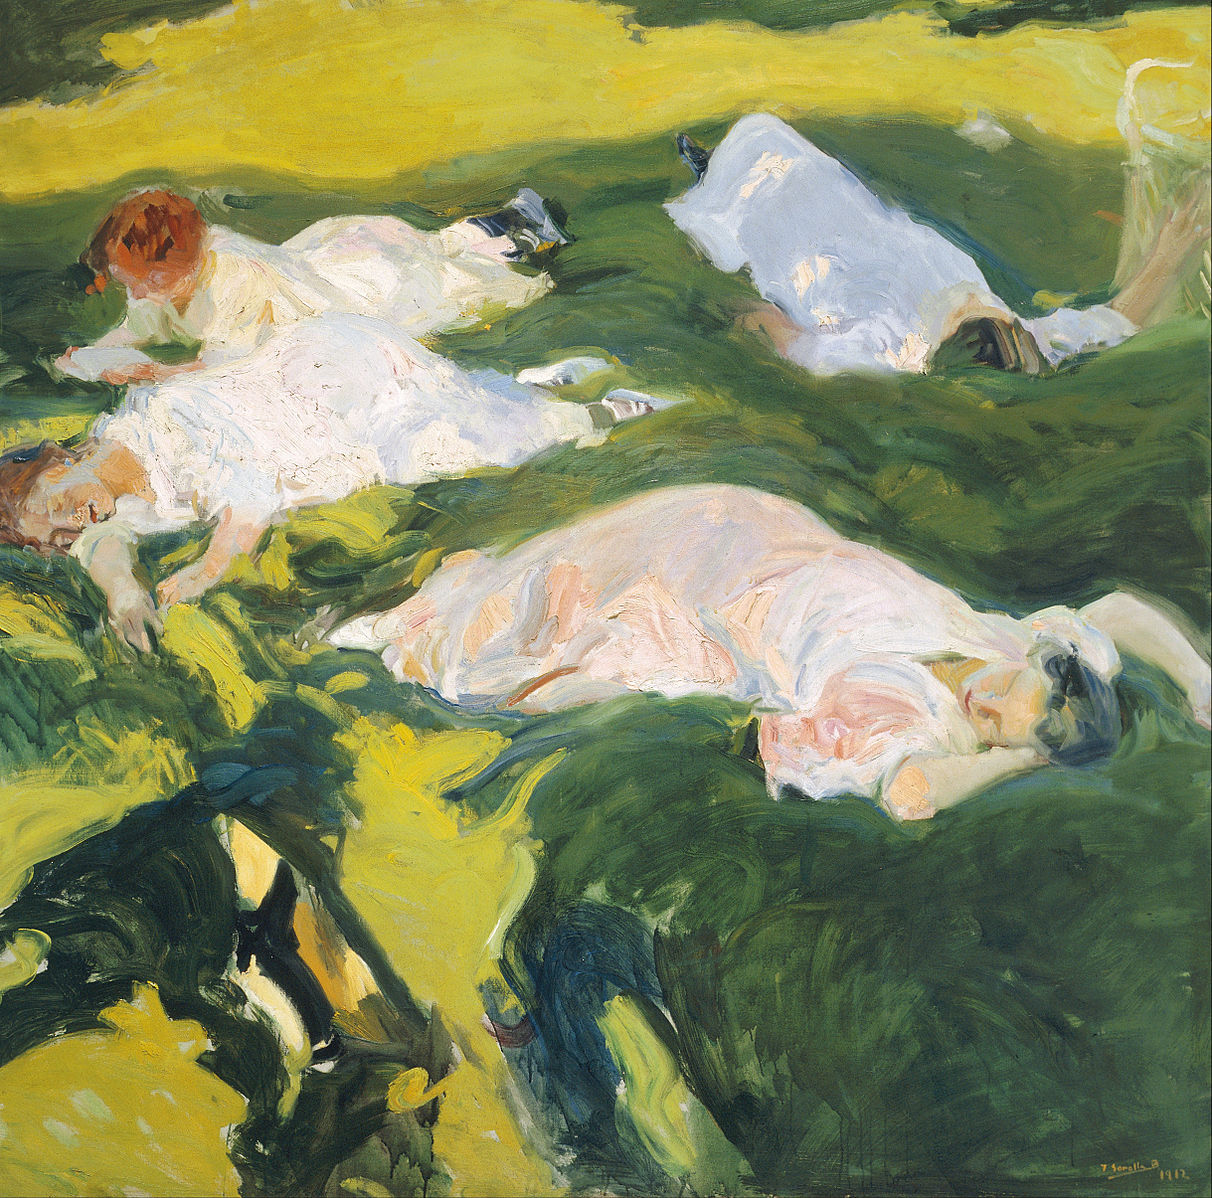 The Importance of the Siesta